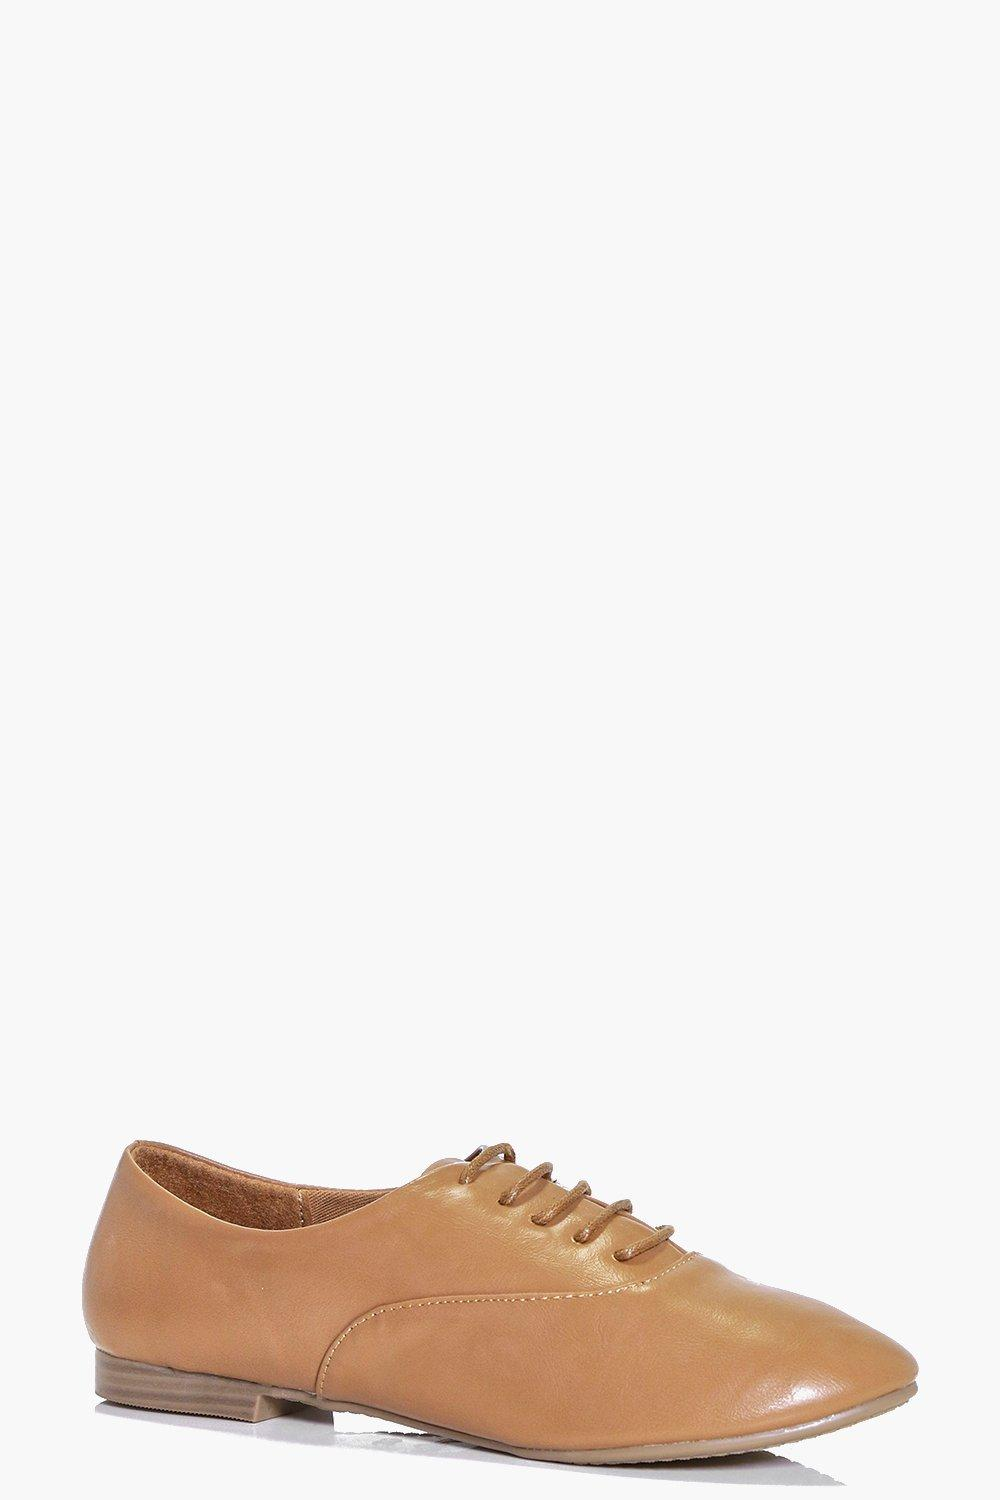 Lena Lace Up Brogue Flat